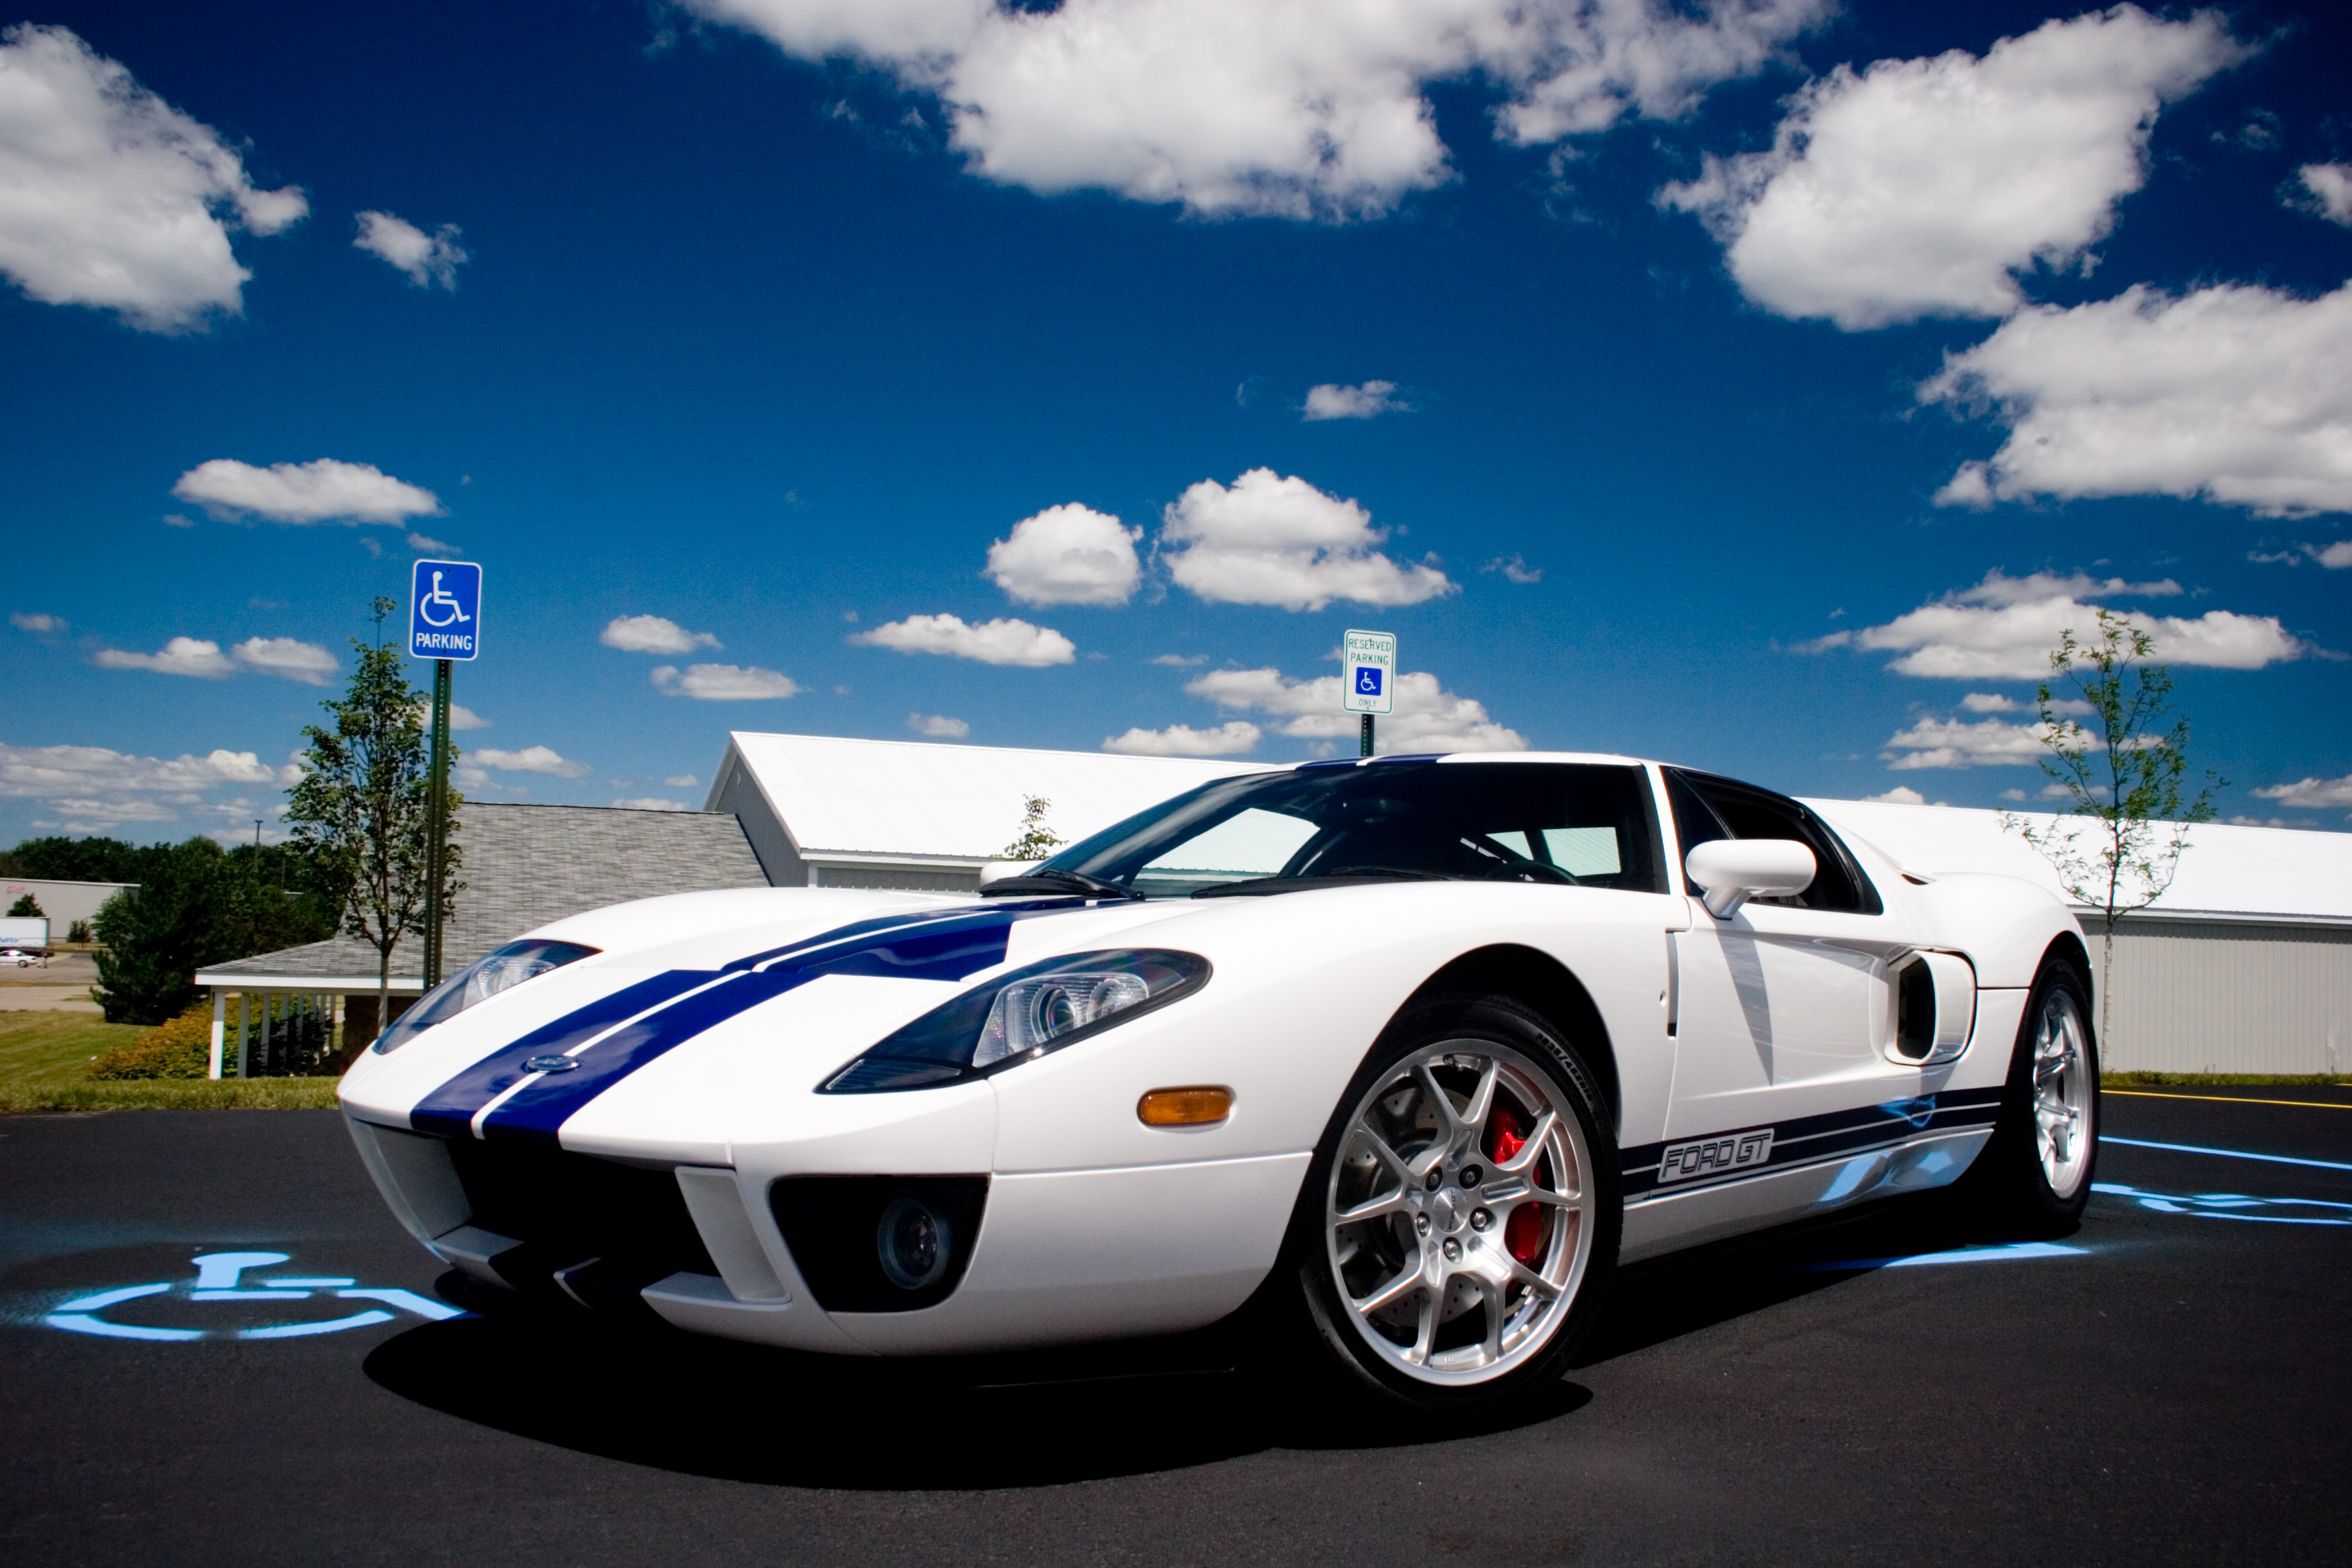 2005 FORD GT Computer Wallpapers Desktop Backgrounds 3504x2336 ID 3504x2336